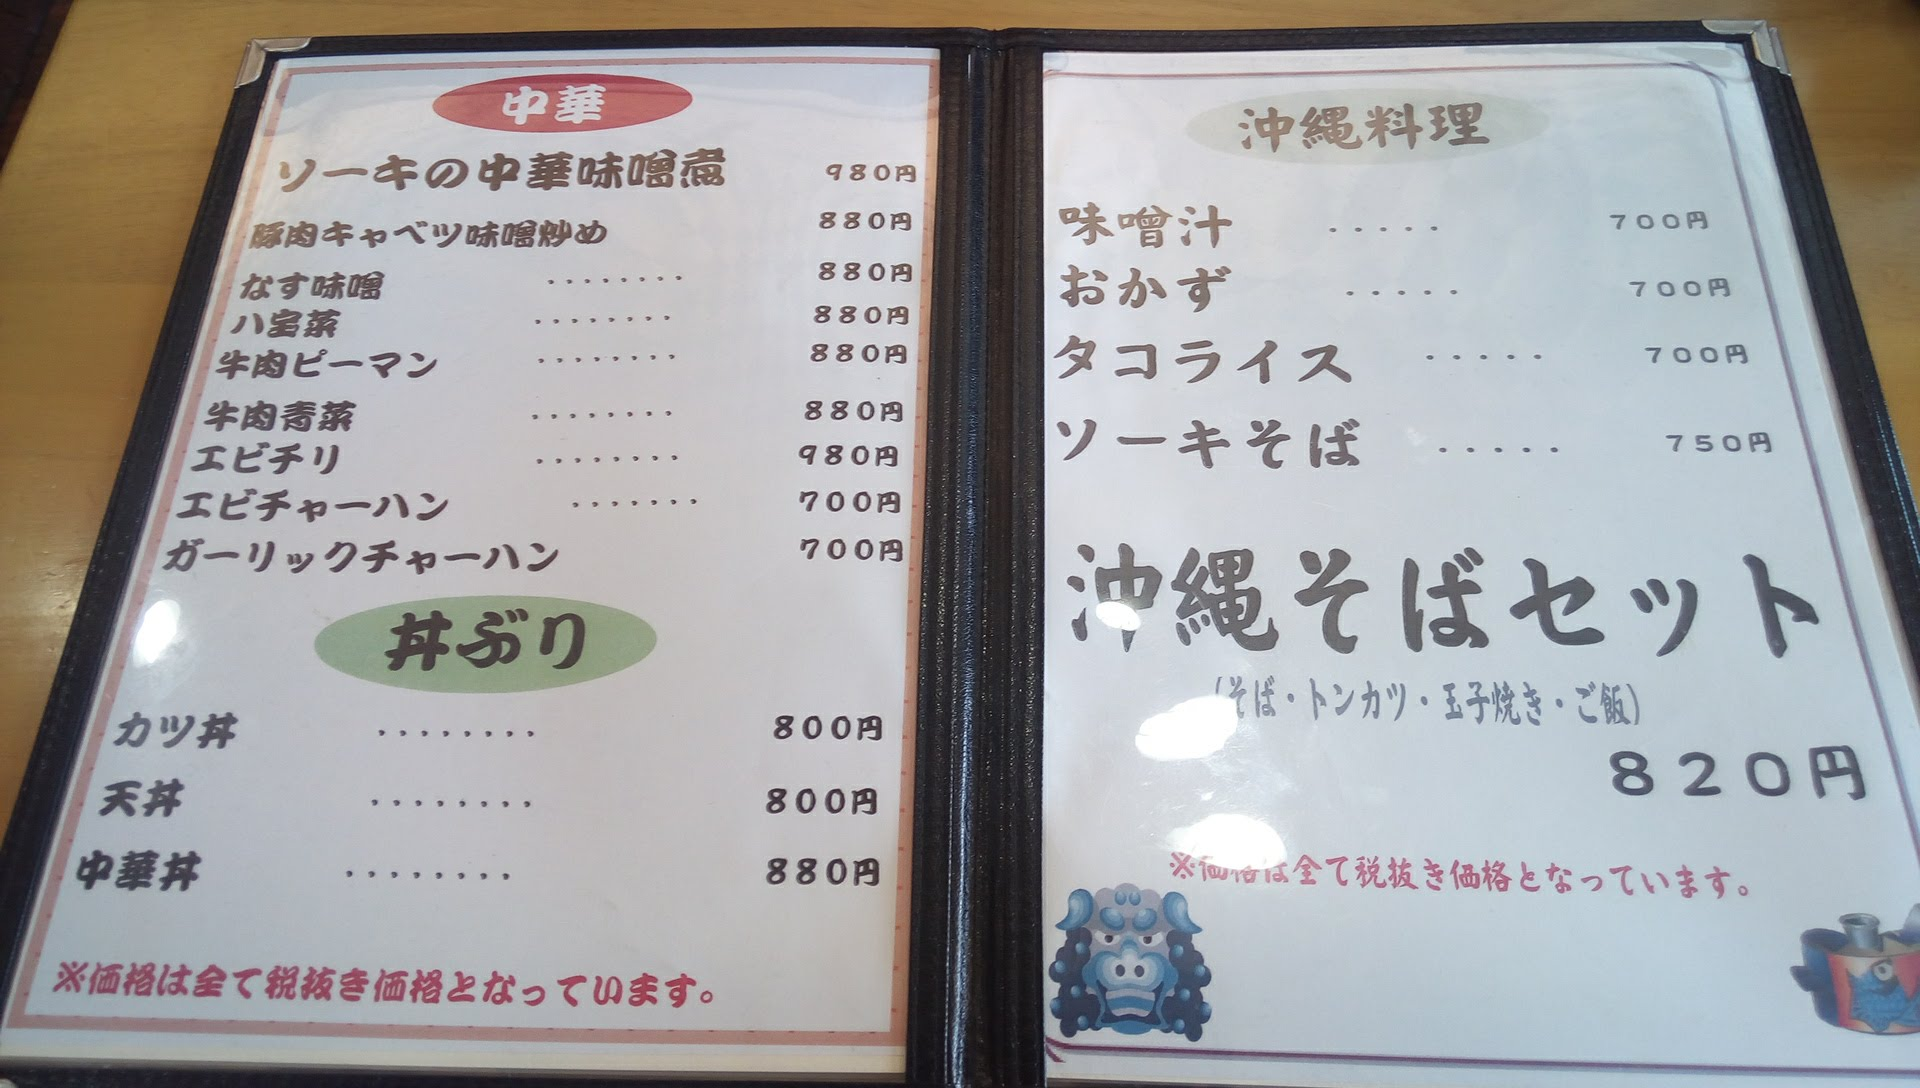 the oak restaurant menu 2